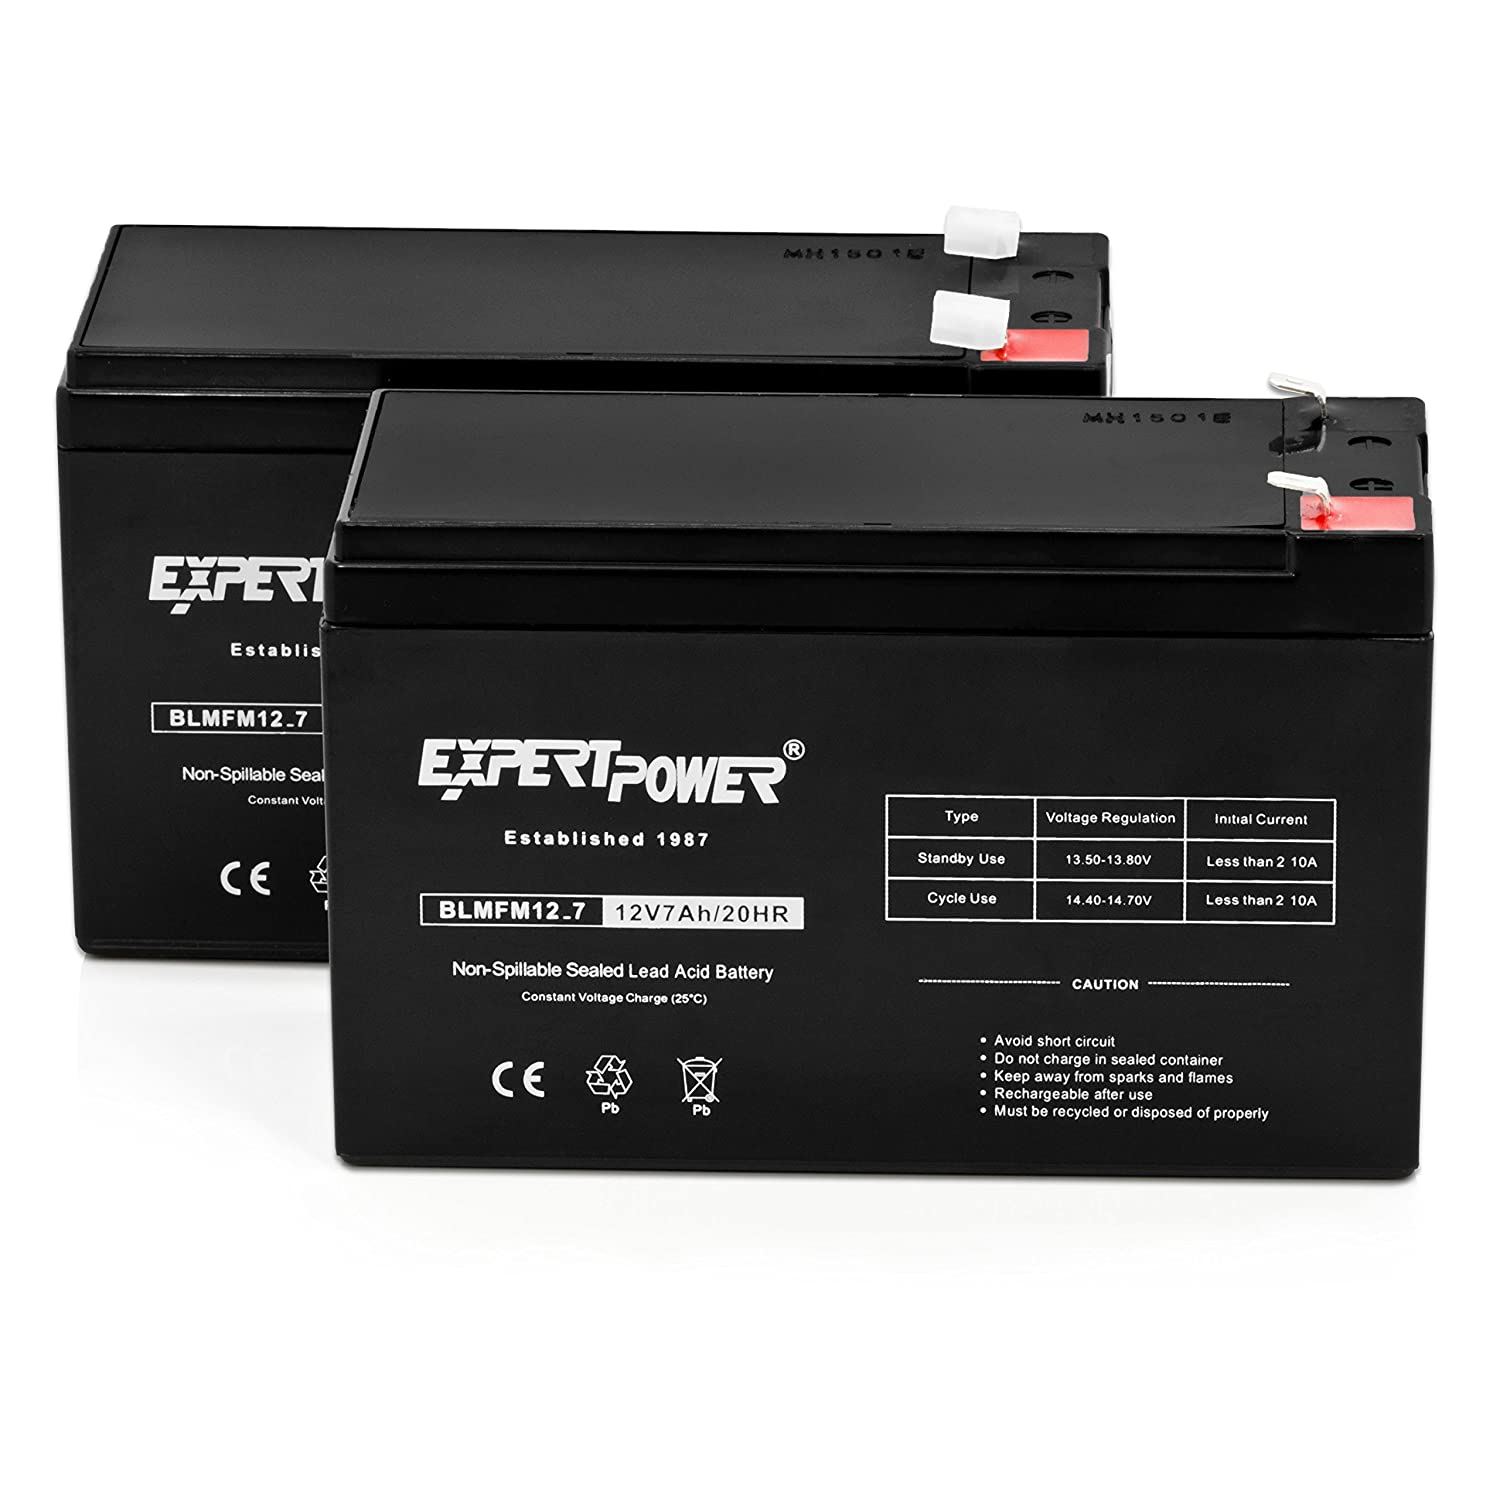 10 Pack Replaces APC Back-UPS ES 550 VA EXP1270| ExpertPower 12v 7ah Rechargeable Sealed Lead Acid Battery